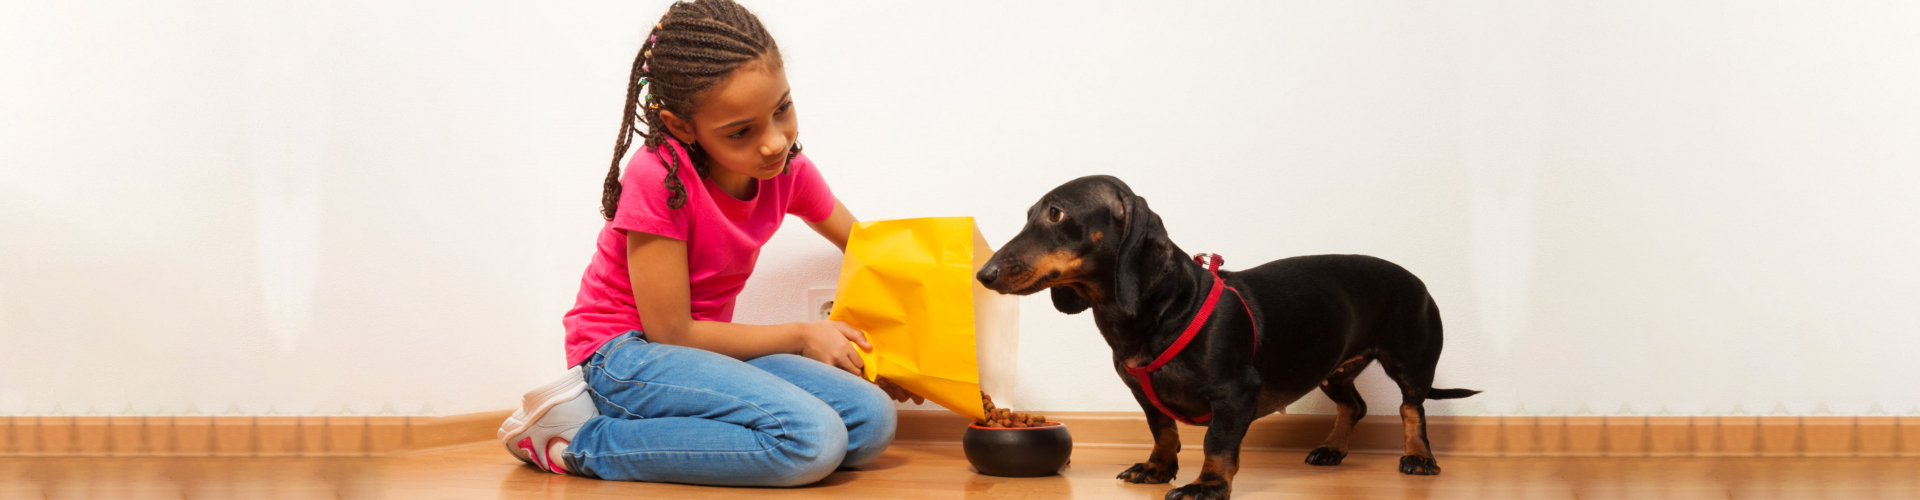 young girl feed the dog pet with food